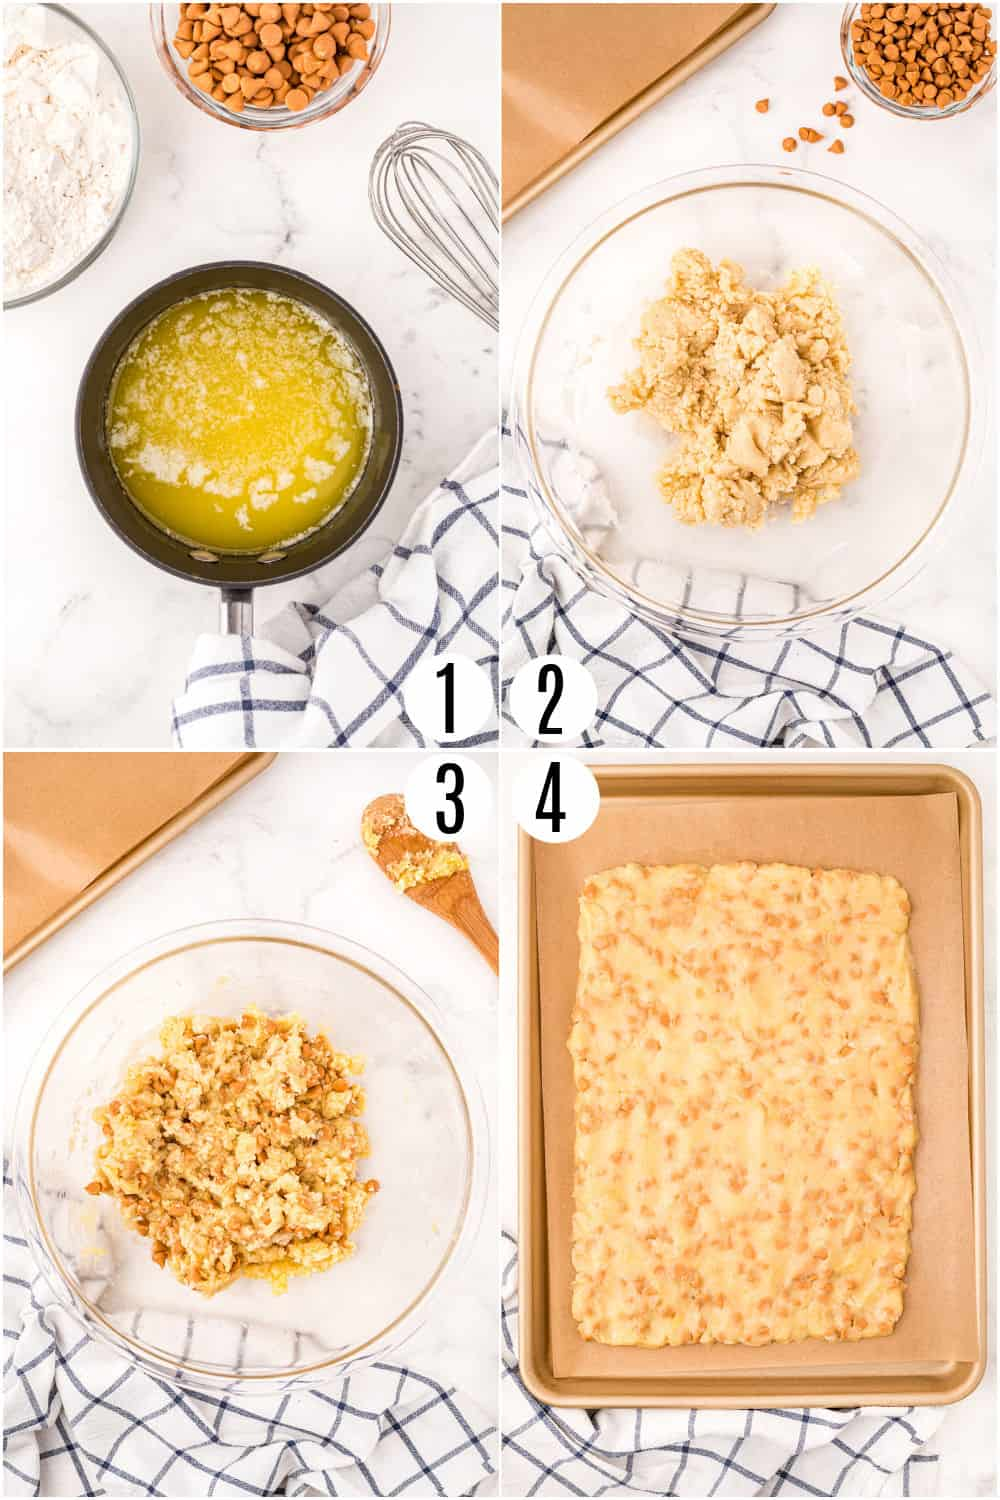 Step by step photos showing how to make butterscotch shortbread cookies.